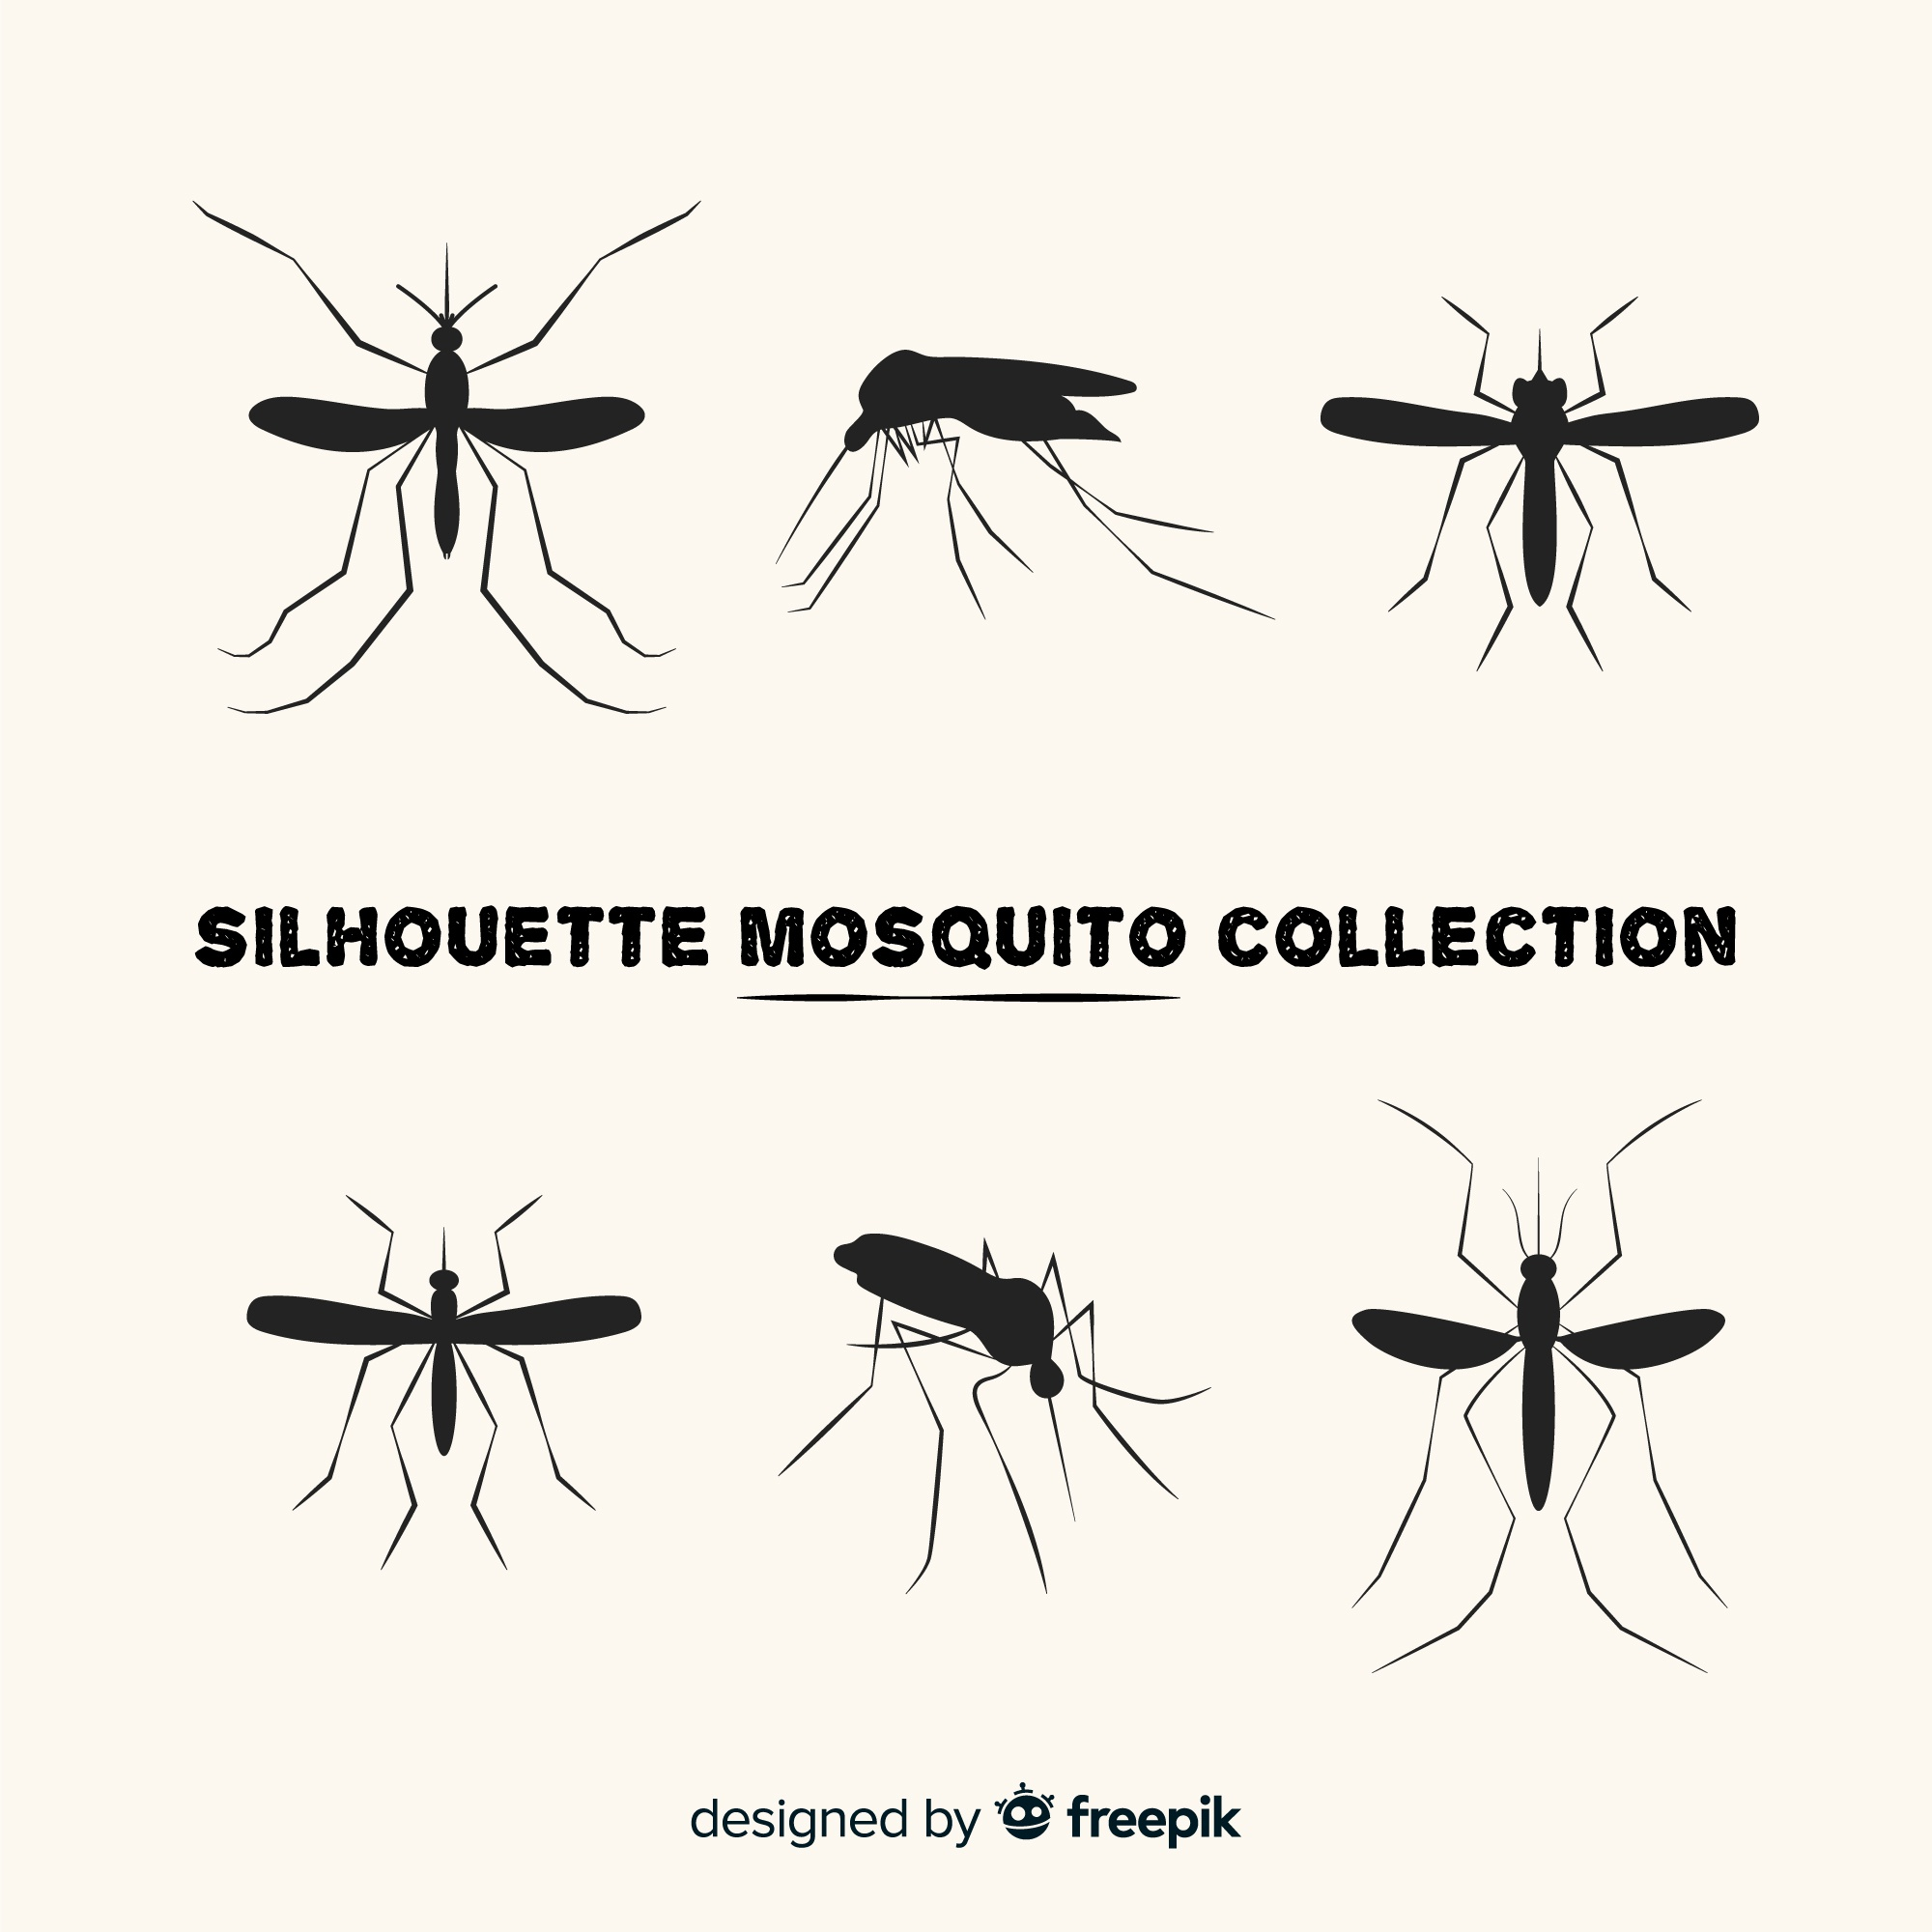 Creative collection of mosquito silhouettes